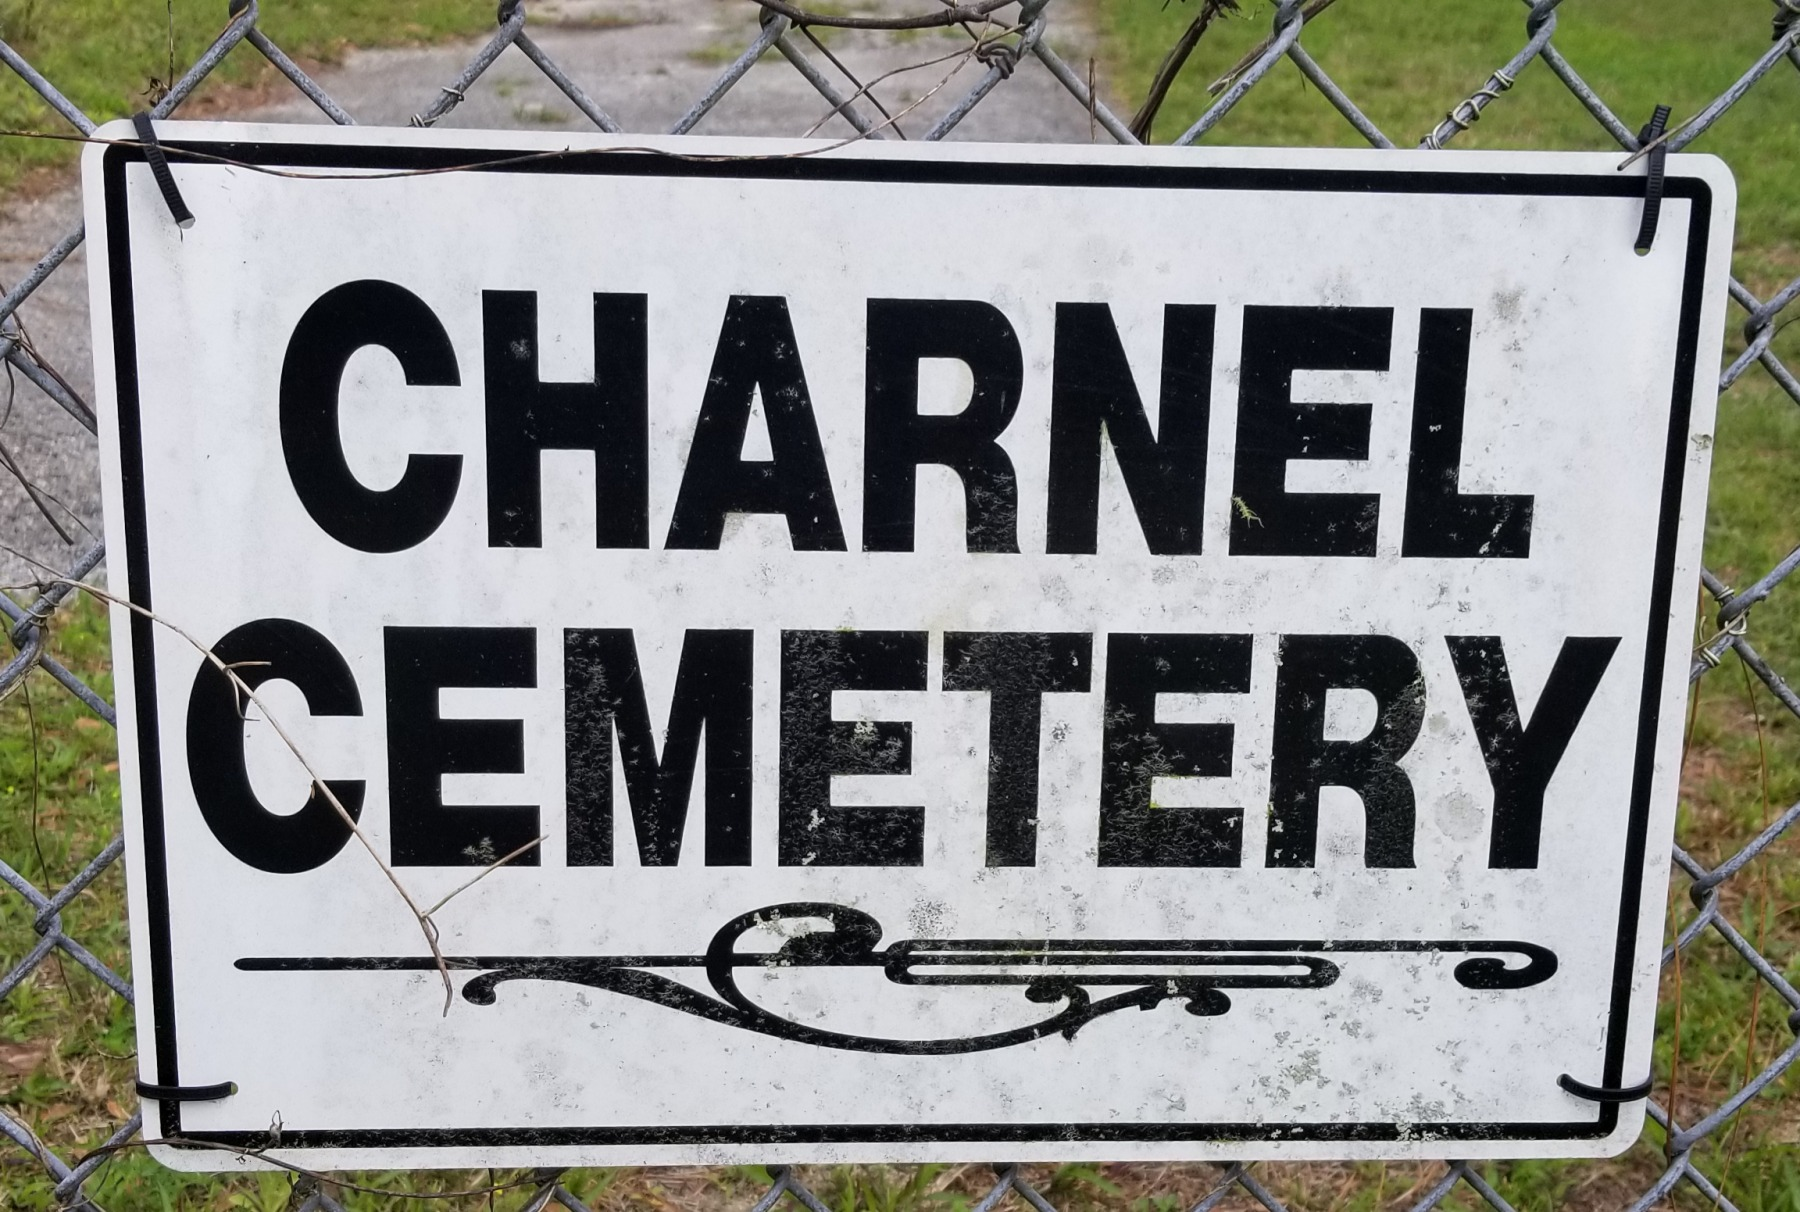 Charnel Cemetery sign located on fence gate